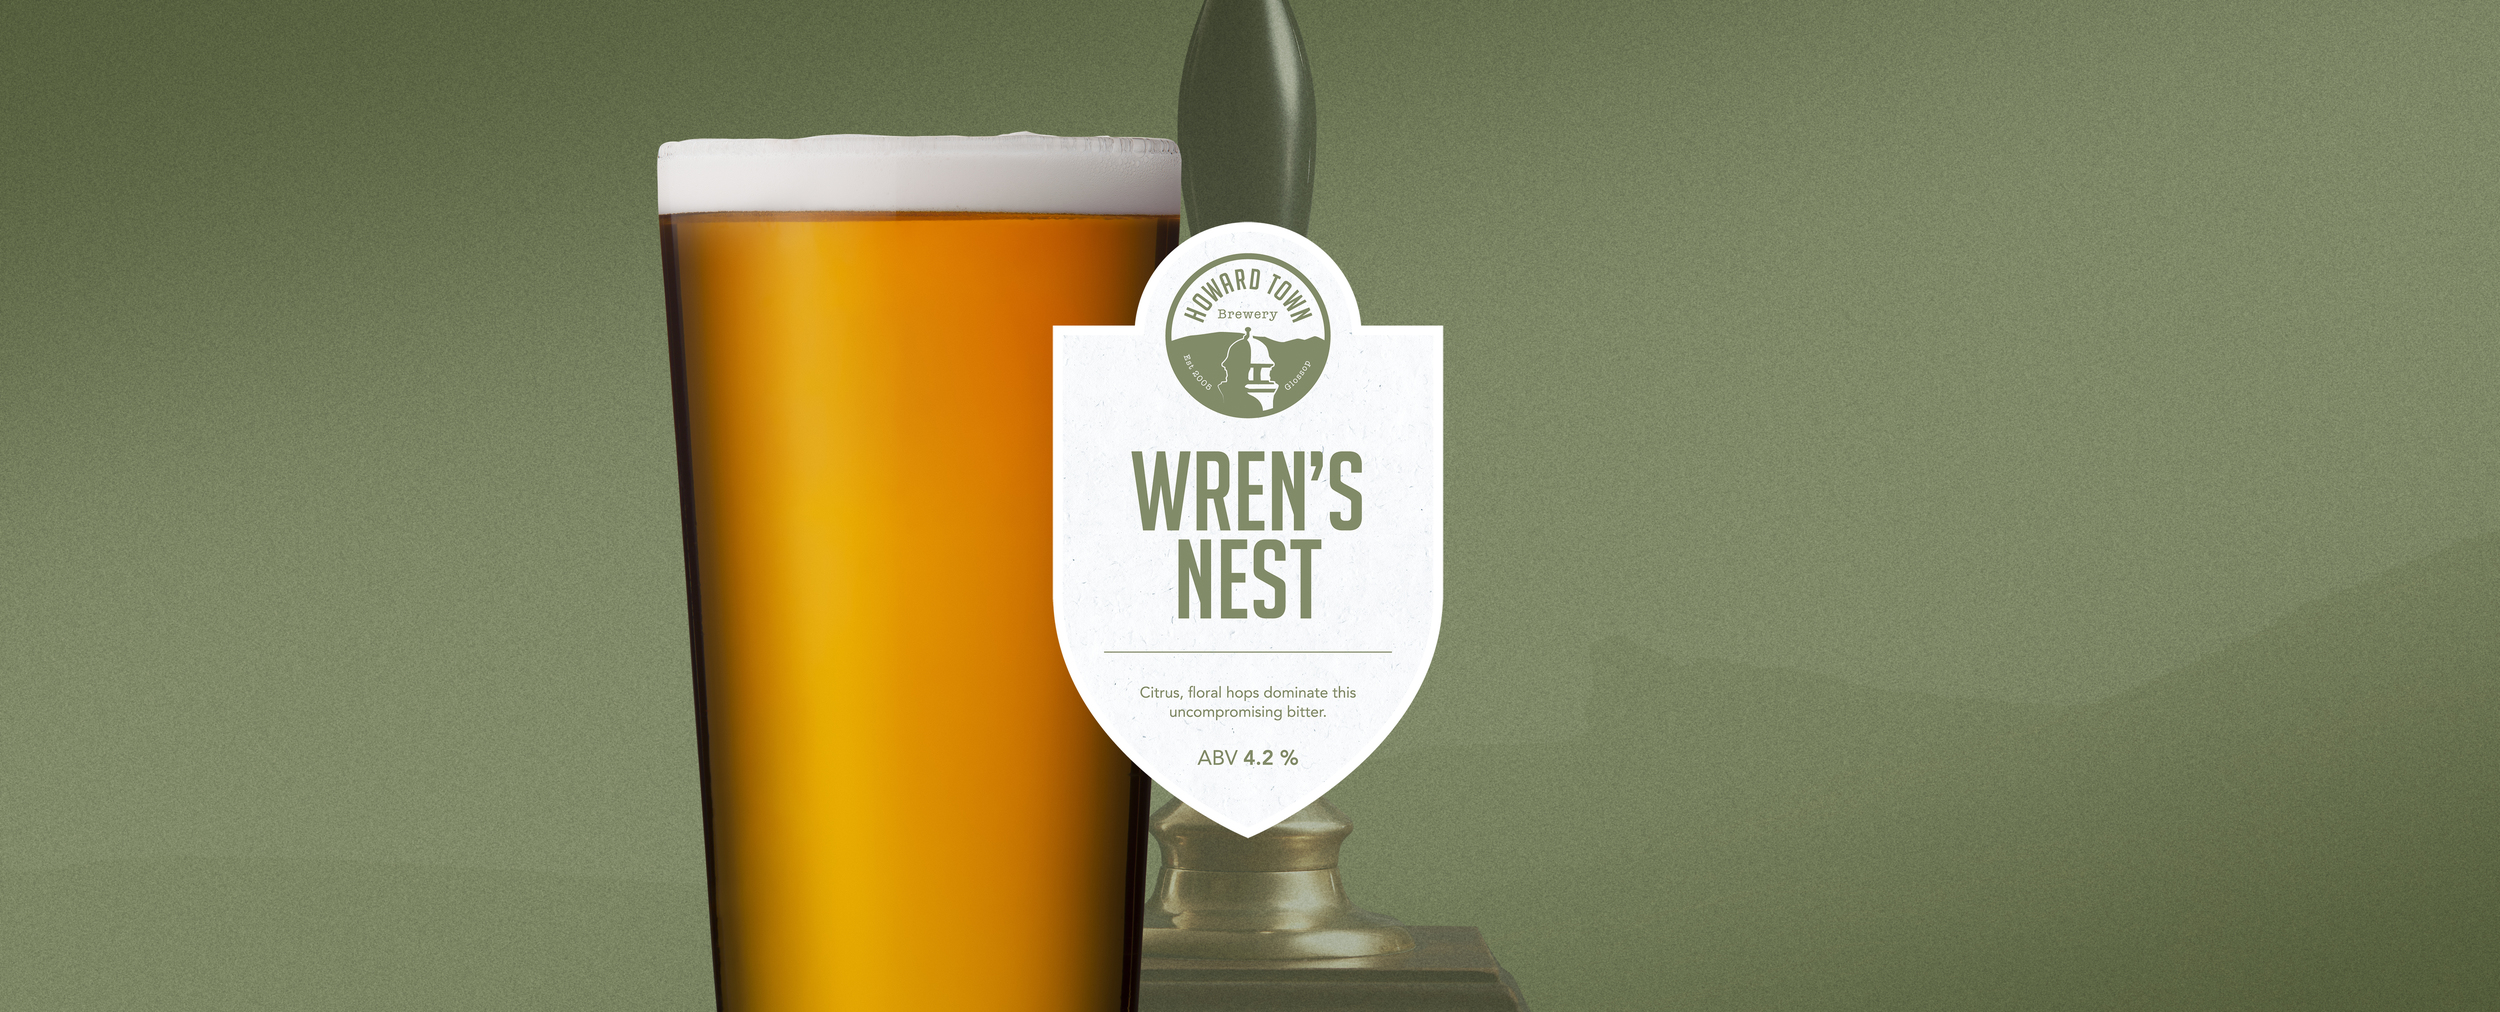 Citrus floral hops dominate this uncompromising bitter. Our best seller since 2007. 4.2%ABV